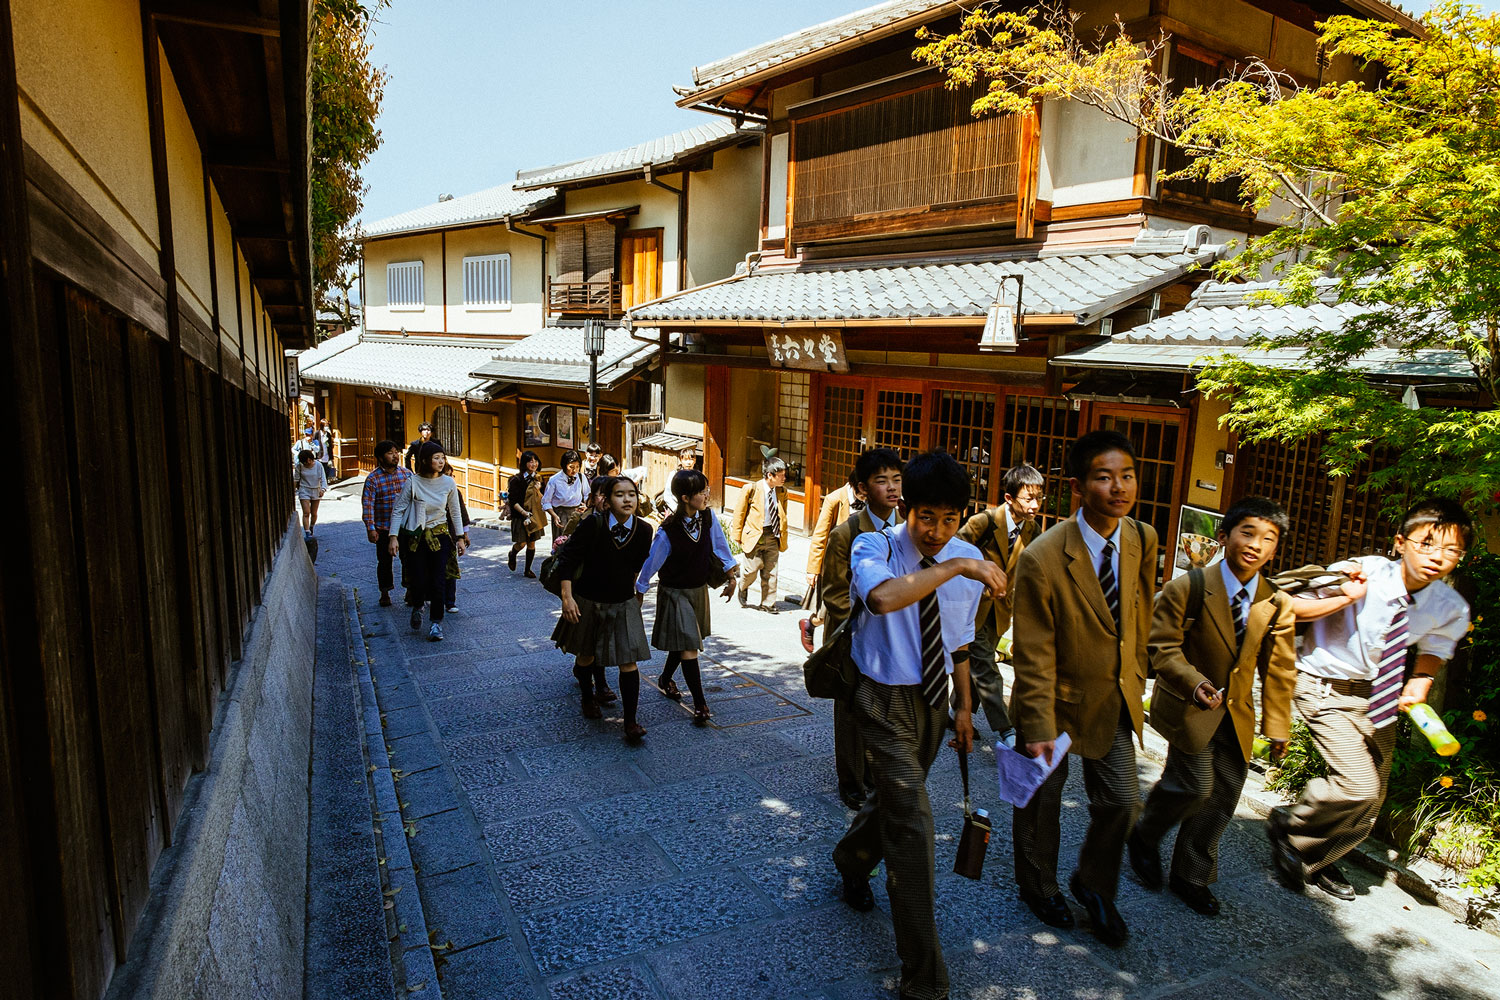 Students walking towards the Kyoumizudera